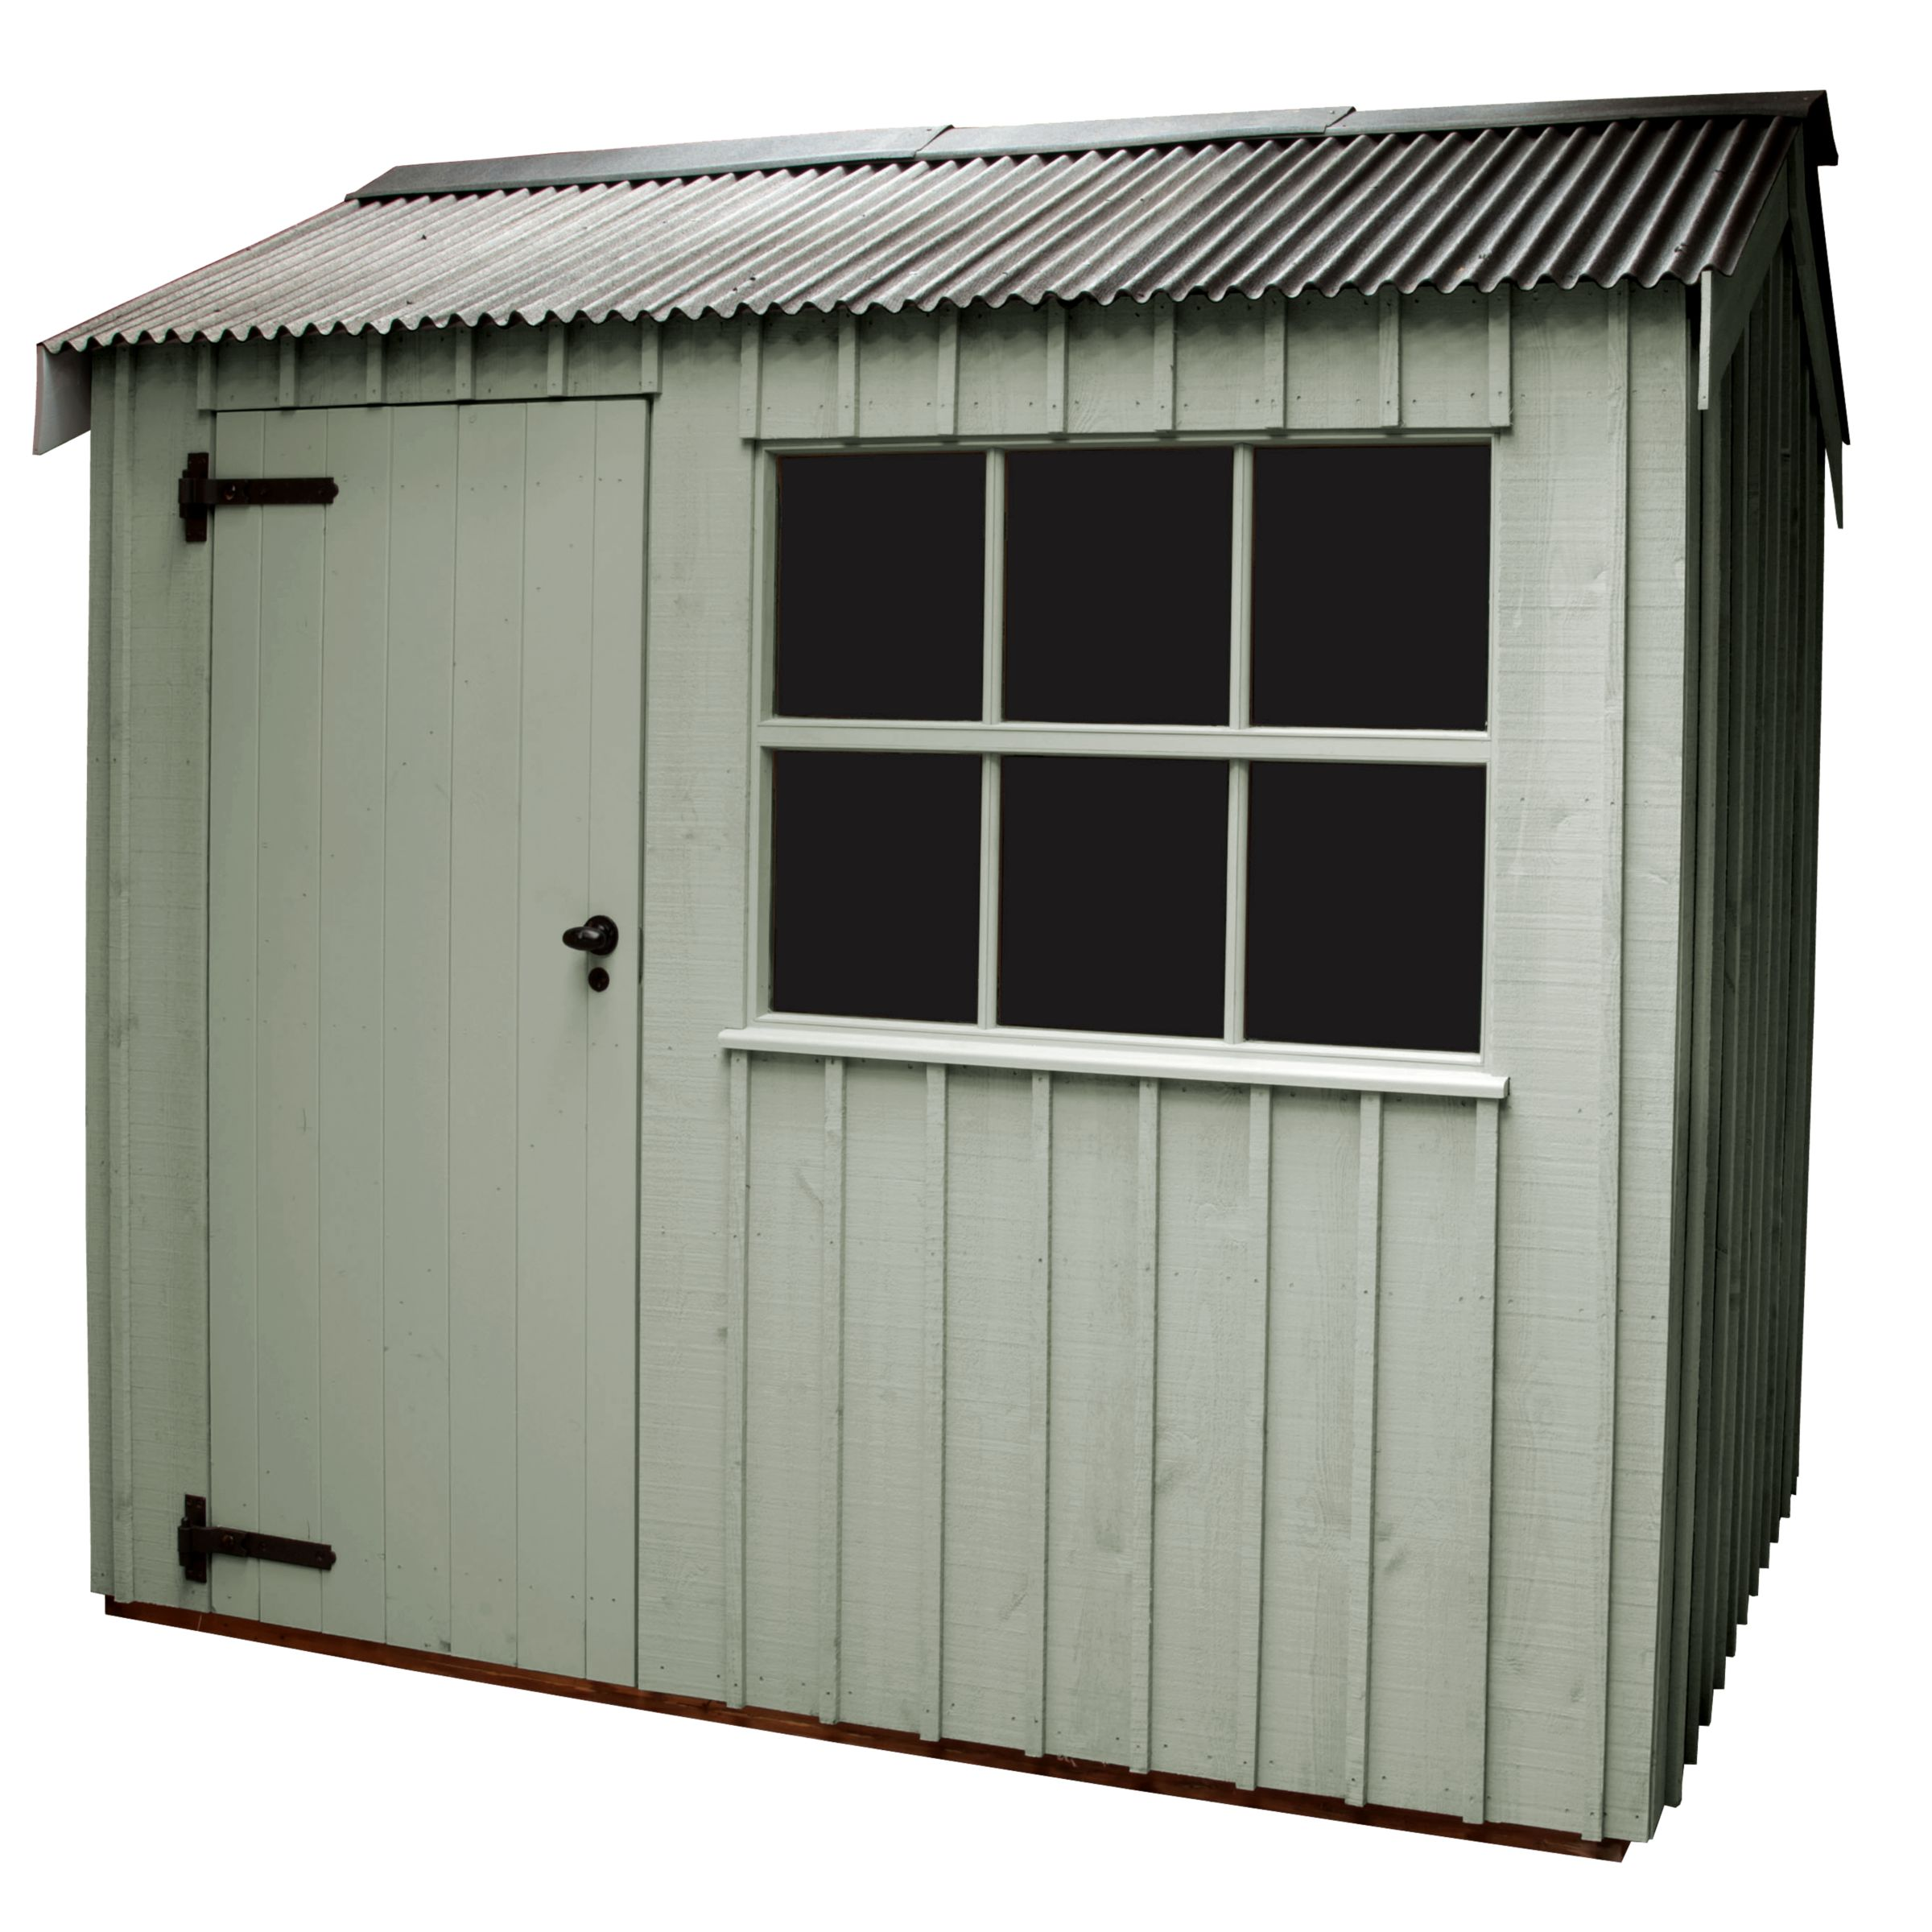 National Trust By Crane Felbrigg Fsc Garden Shed, 1.8x3m